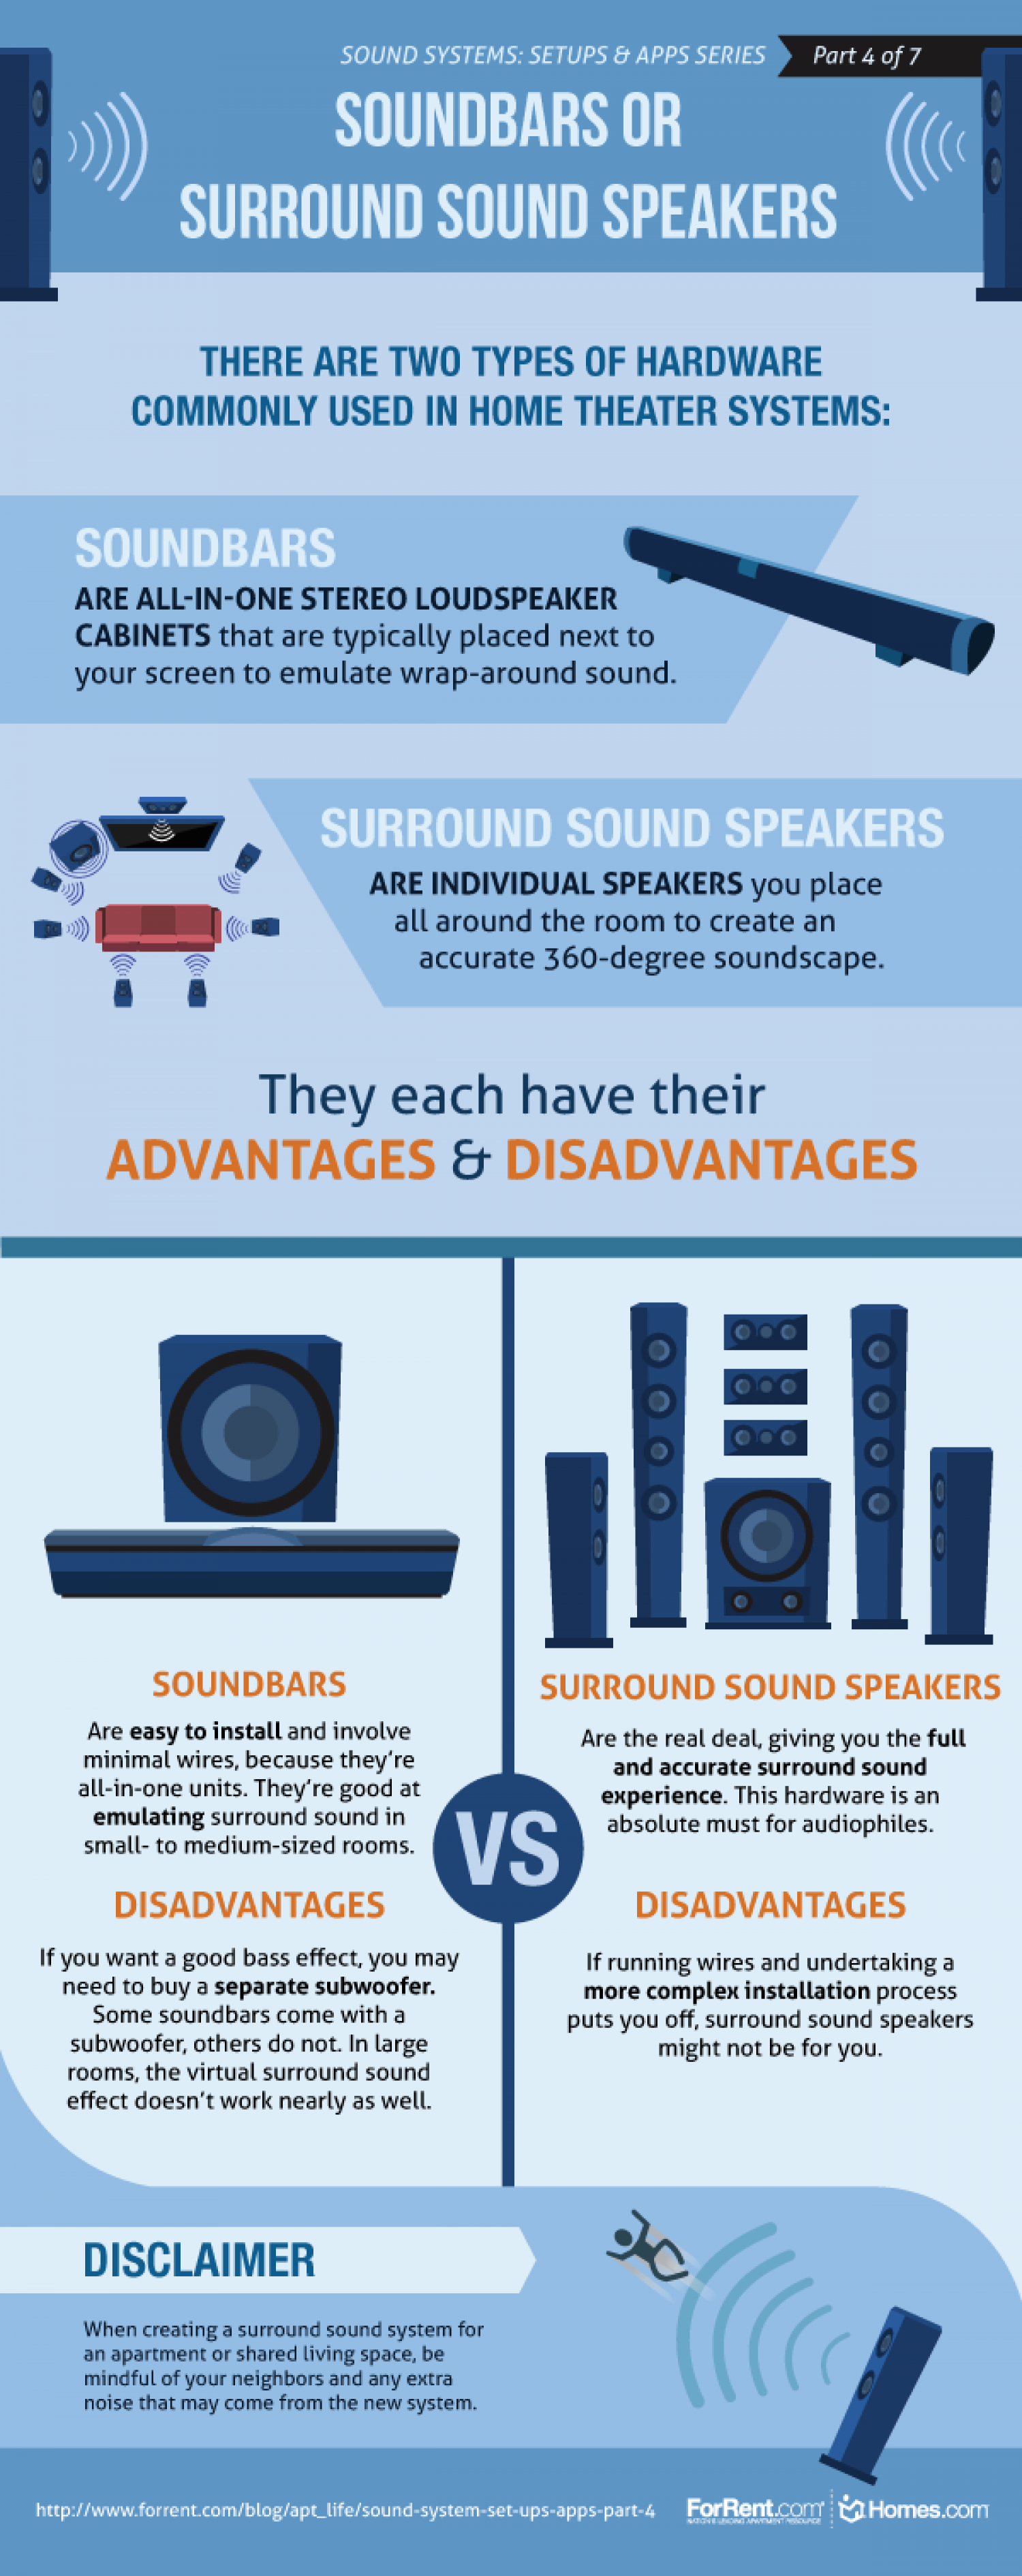 Sound System Set Ups & Apps – Part 4 Infographic